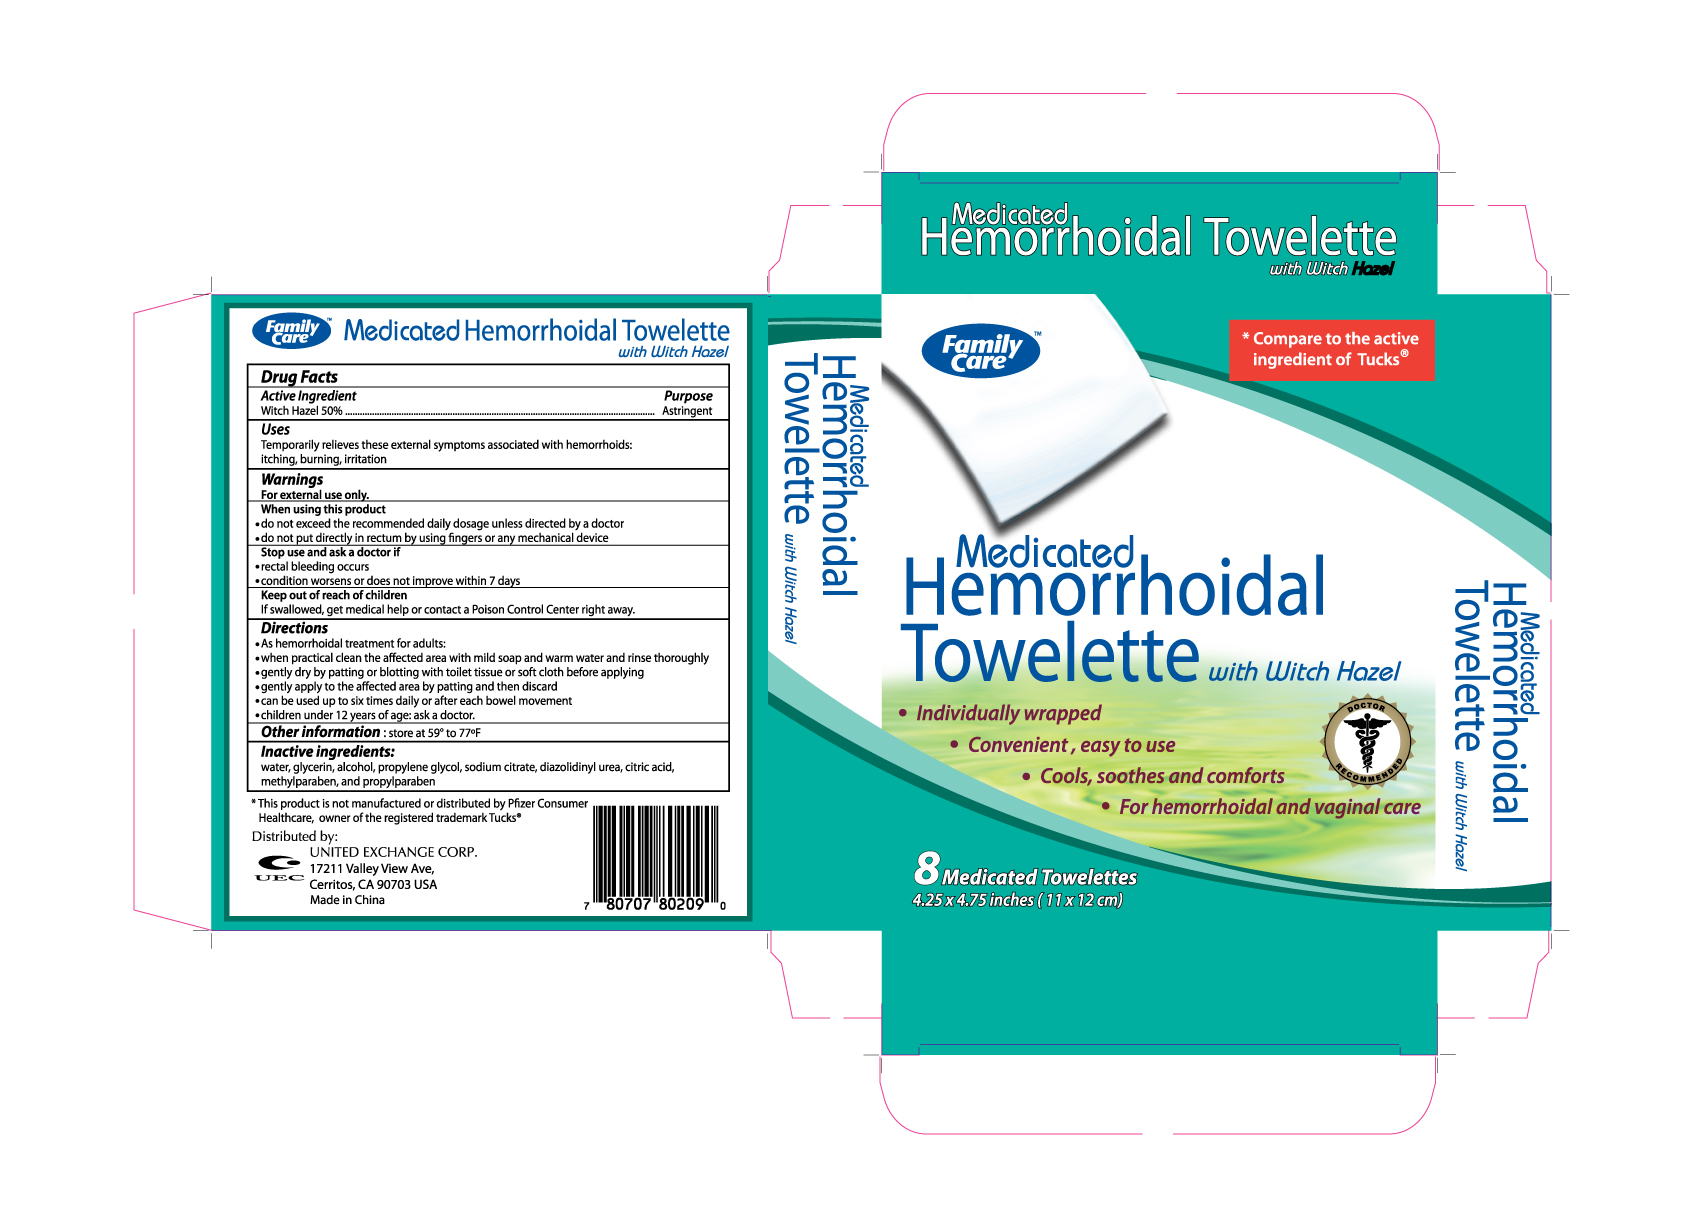 Family Care Medicated Hemorrhoidal (Witch Hazel) Cloth [United Exchange Corporation]